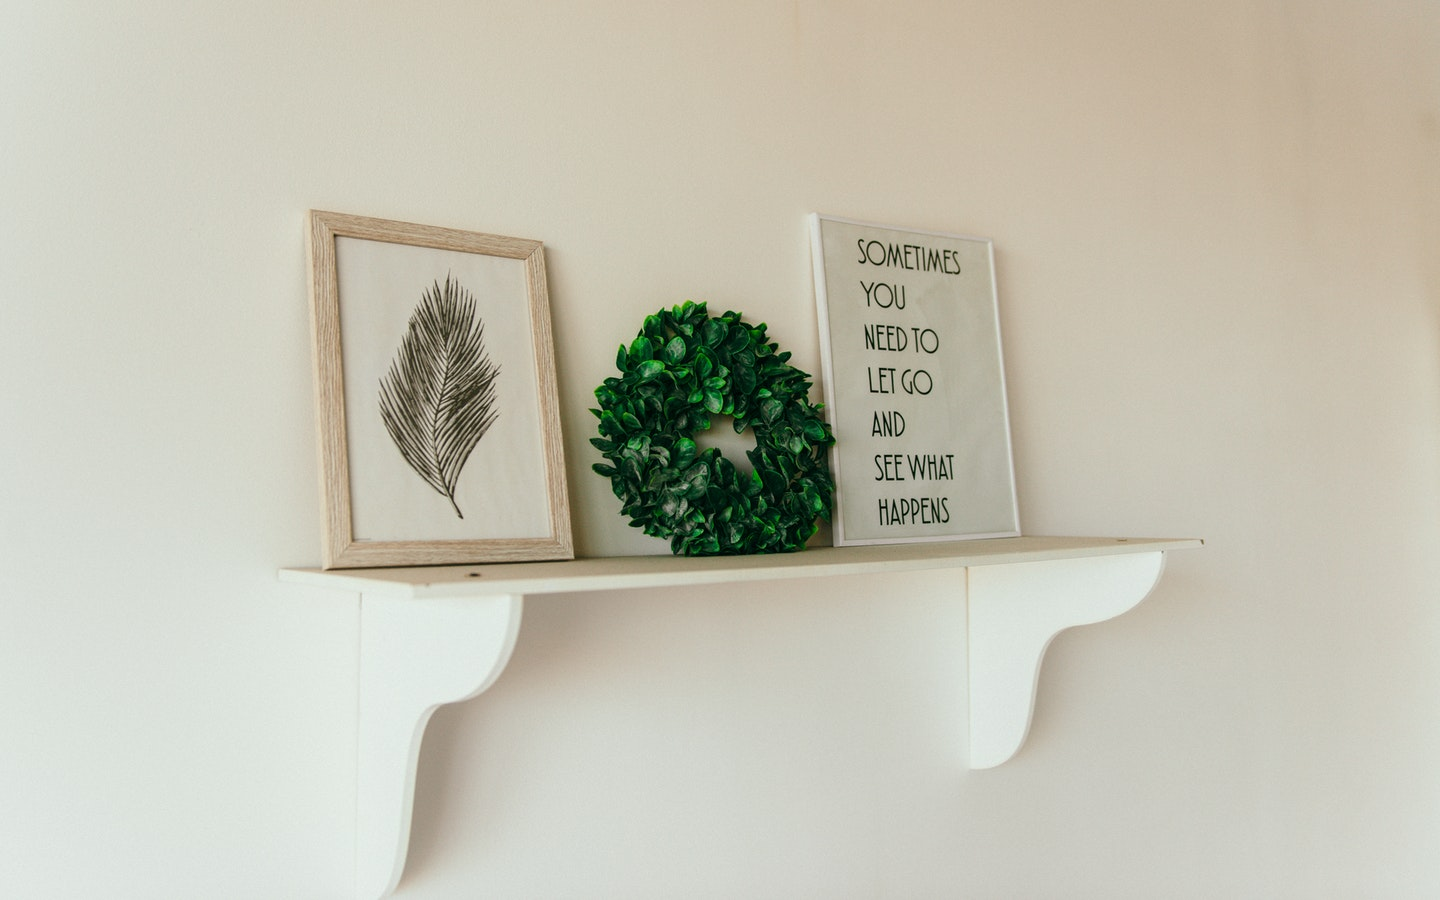 Hanging shelves save a lot of space